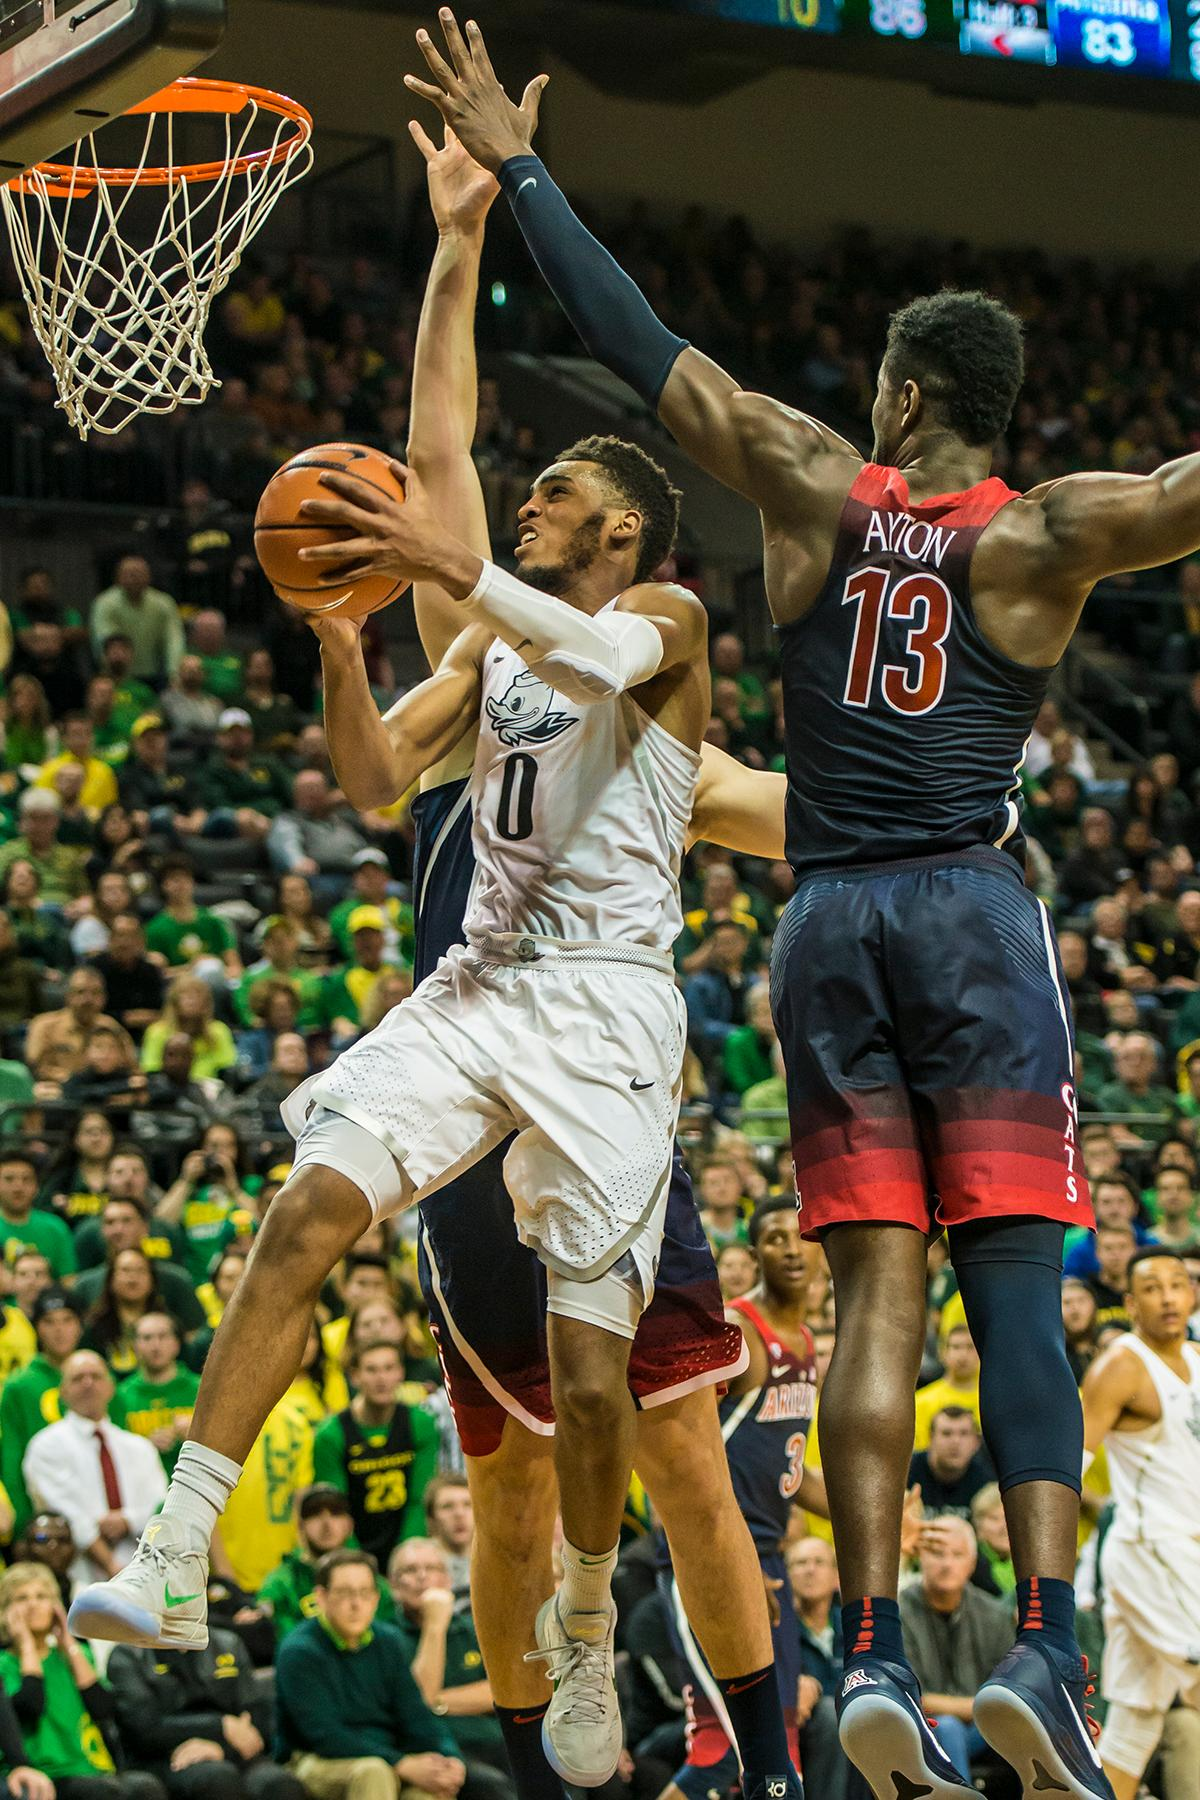 Oregon's Troy Brown jr. (0) goes up against Arizona's DeAndre Ayton in their matchup at Matthew Knight Arena Saturday. The Ducks upset the fourteenth ranked Wildcats 98-93 in a stunning overtime win in front of a packed house of over 12,000 fans for their final home game to improve to a 19-10 (9-7 PAC-12) record on the season. Oregon will finish out regular season play on the road in Washington next week against Washington State on Thursday, then Washington on the following Saturday. (Photo by Colin Houck)